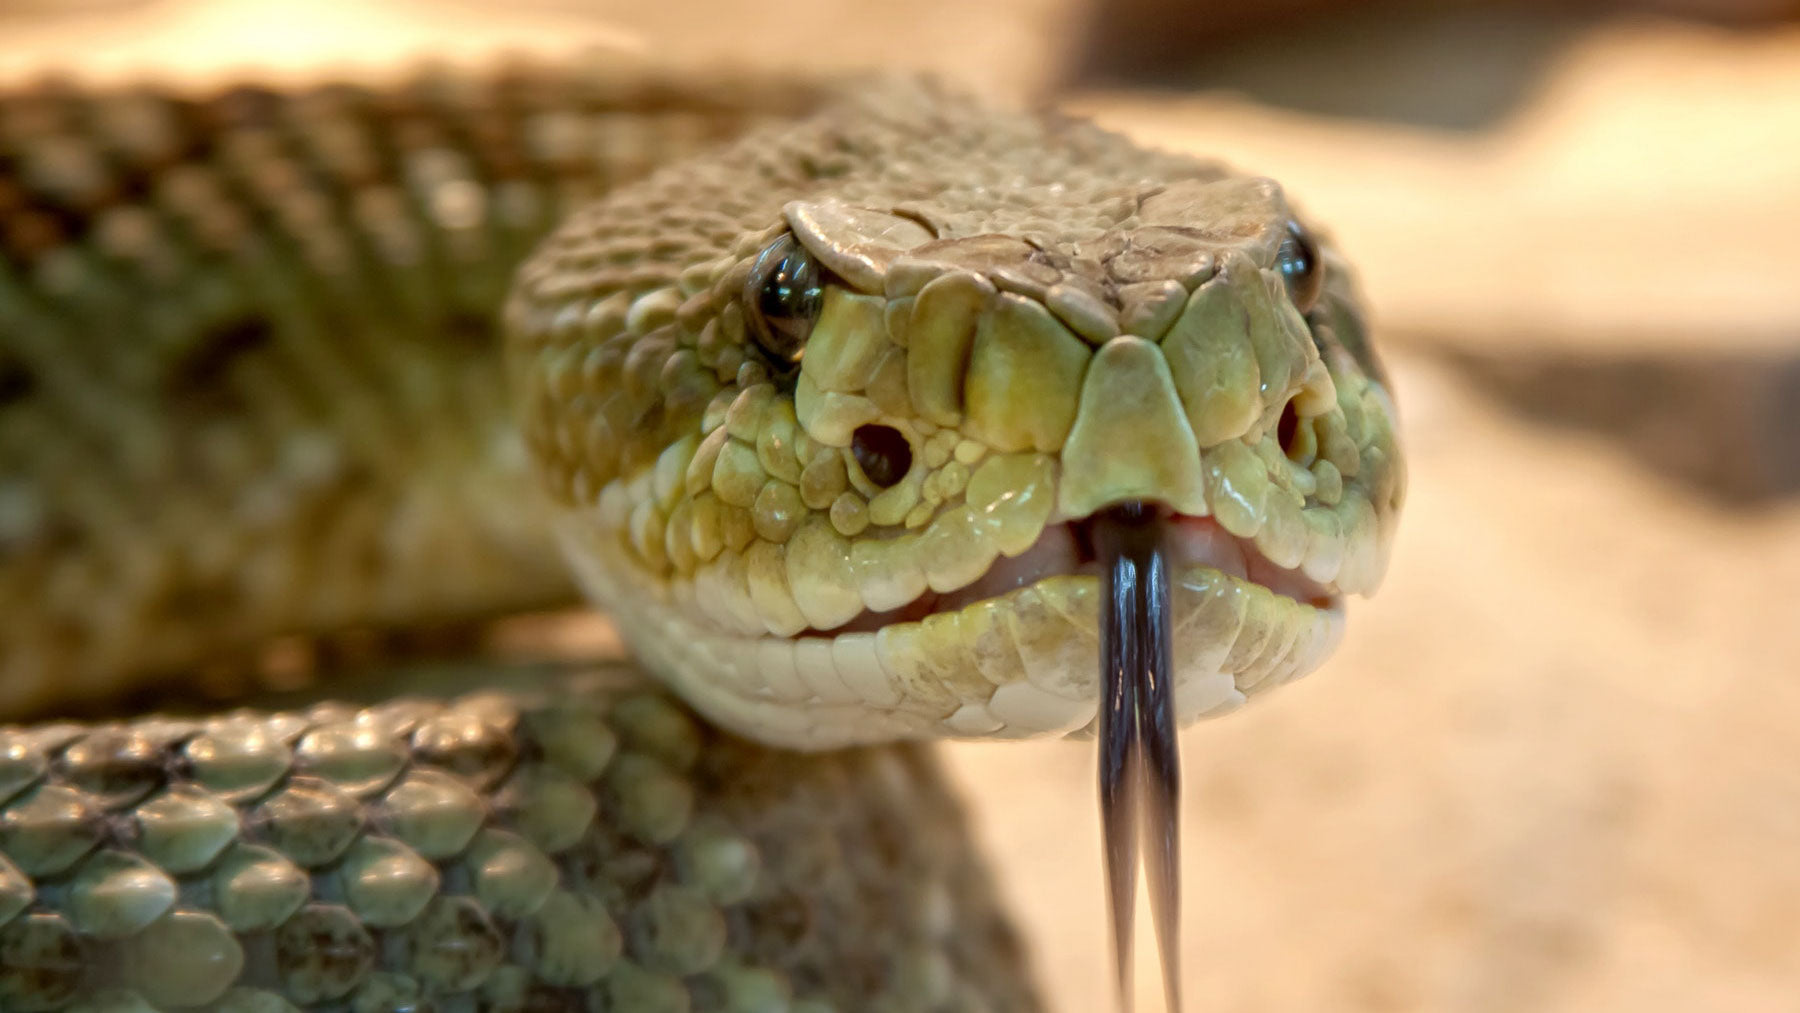 snake facing camera with forked tongue to represent the lies alcohol tells